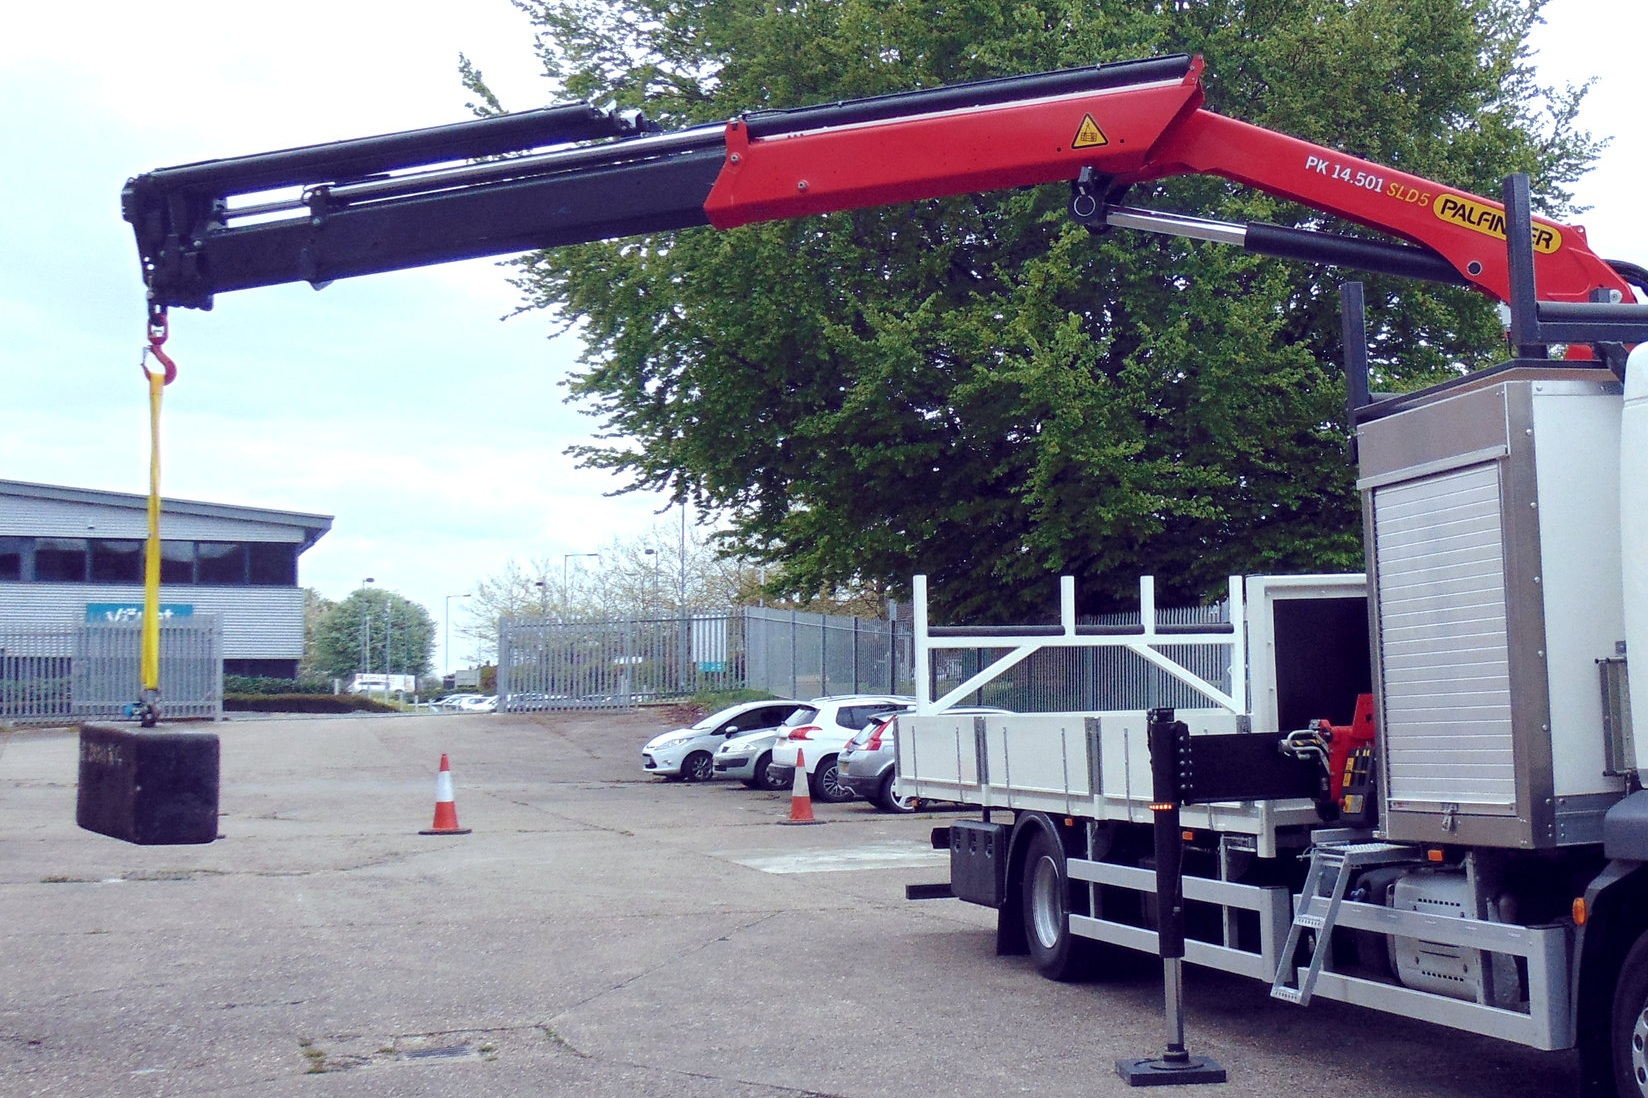 Loler inspections in London & South East (services across all types of lorry loader brands - Hiab, Palfinger, Fassi, PM, Atlas, HMF, Hyva; skip & hook loader)